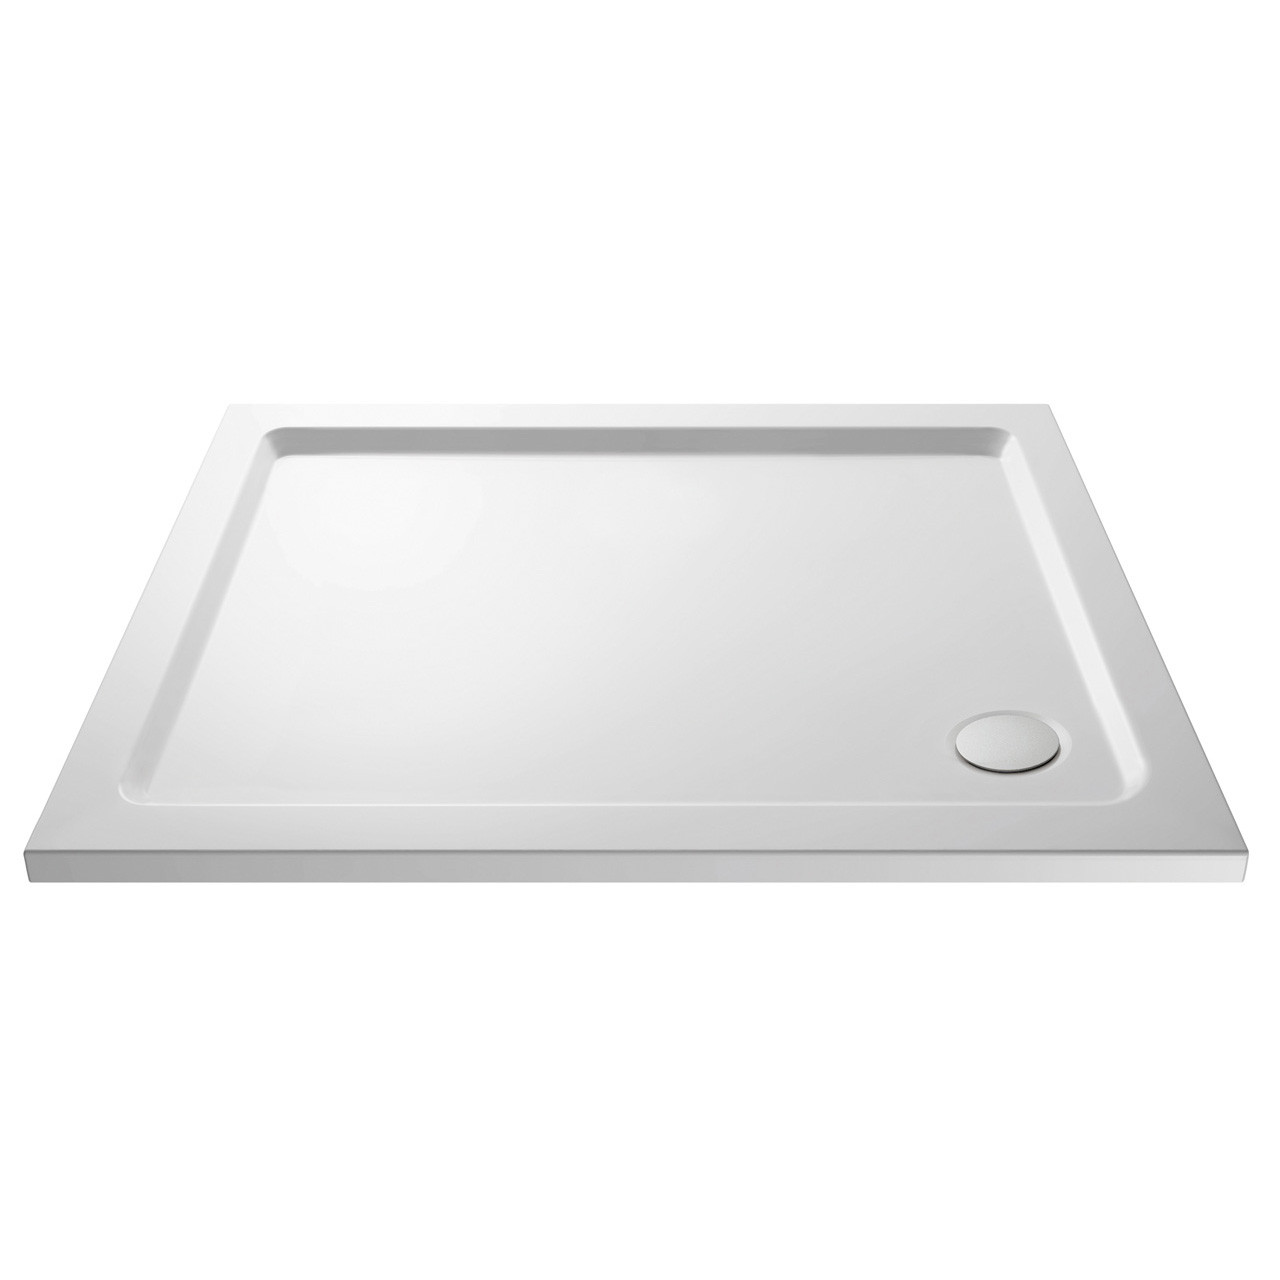 Nuie Pearlstone 1200mm x 800mm Rectangular Shower Tray with Corner Waste - NTP023